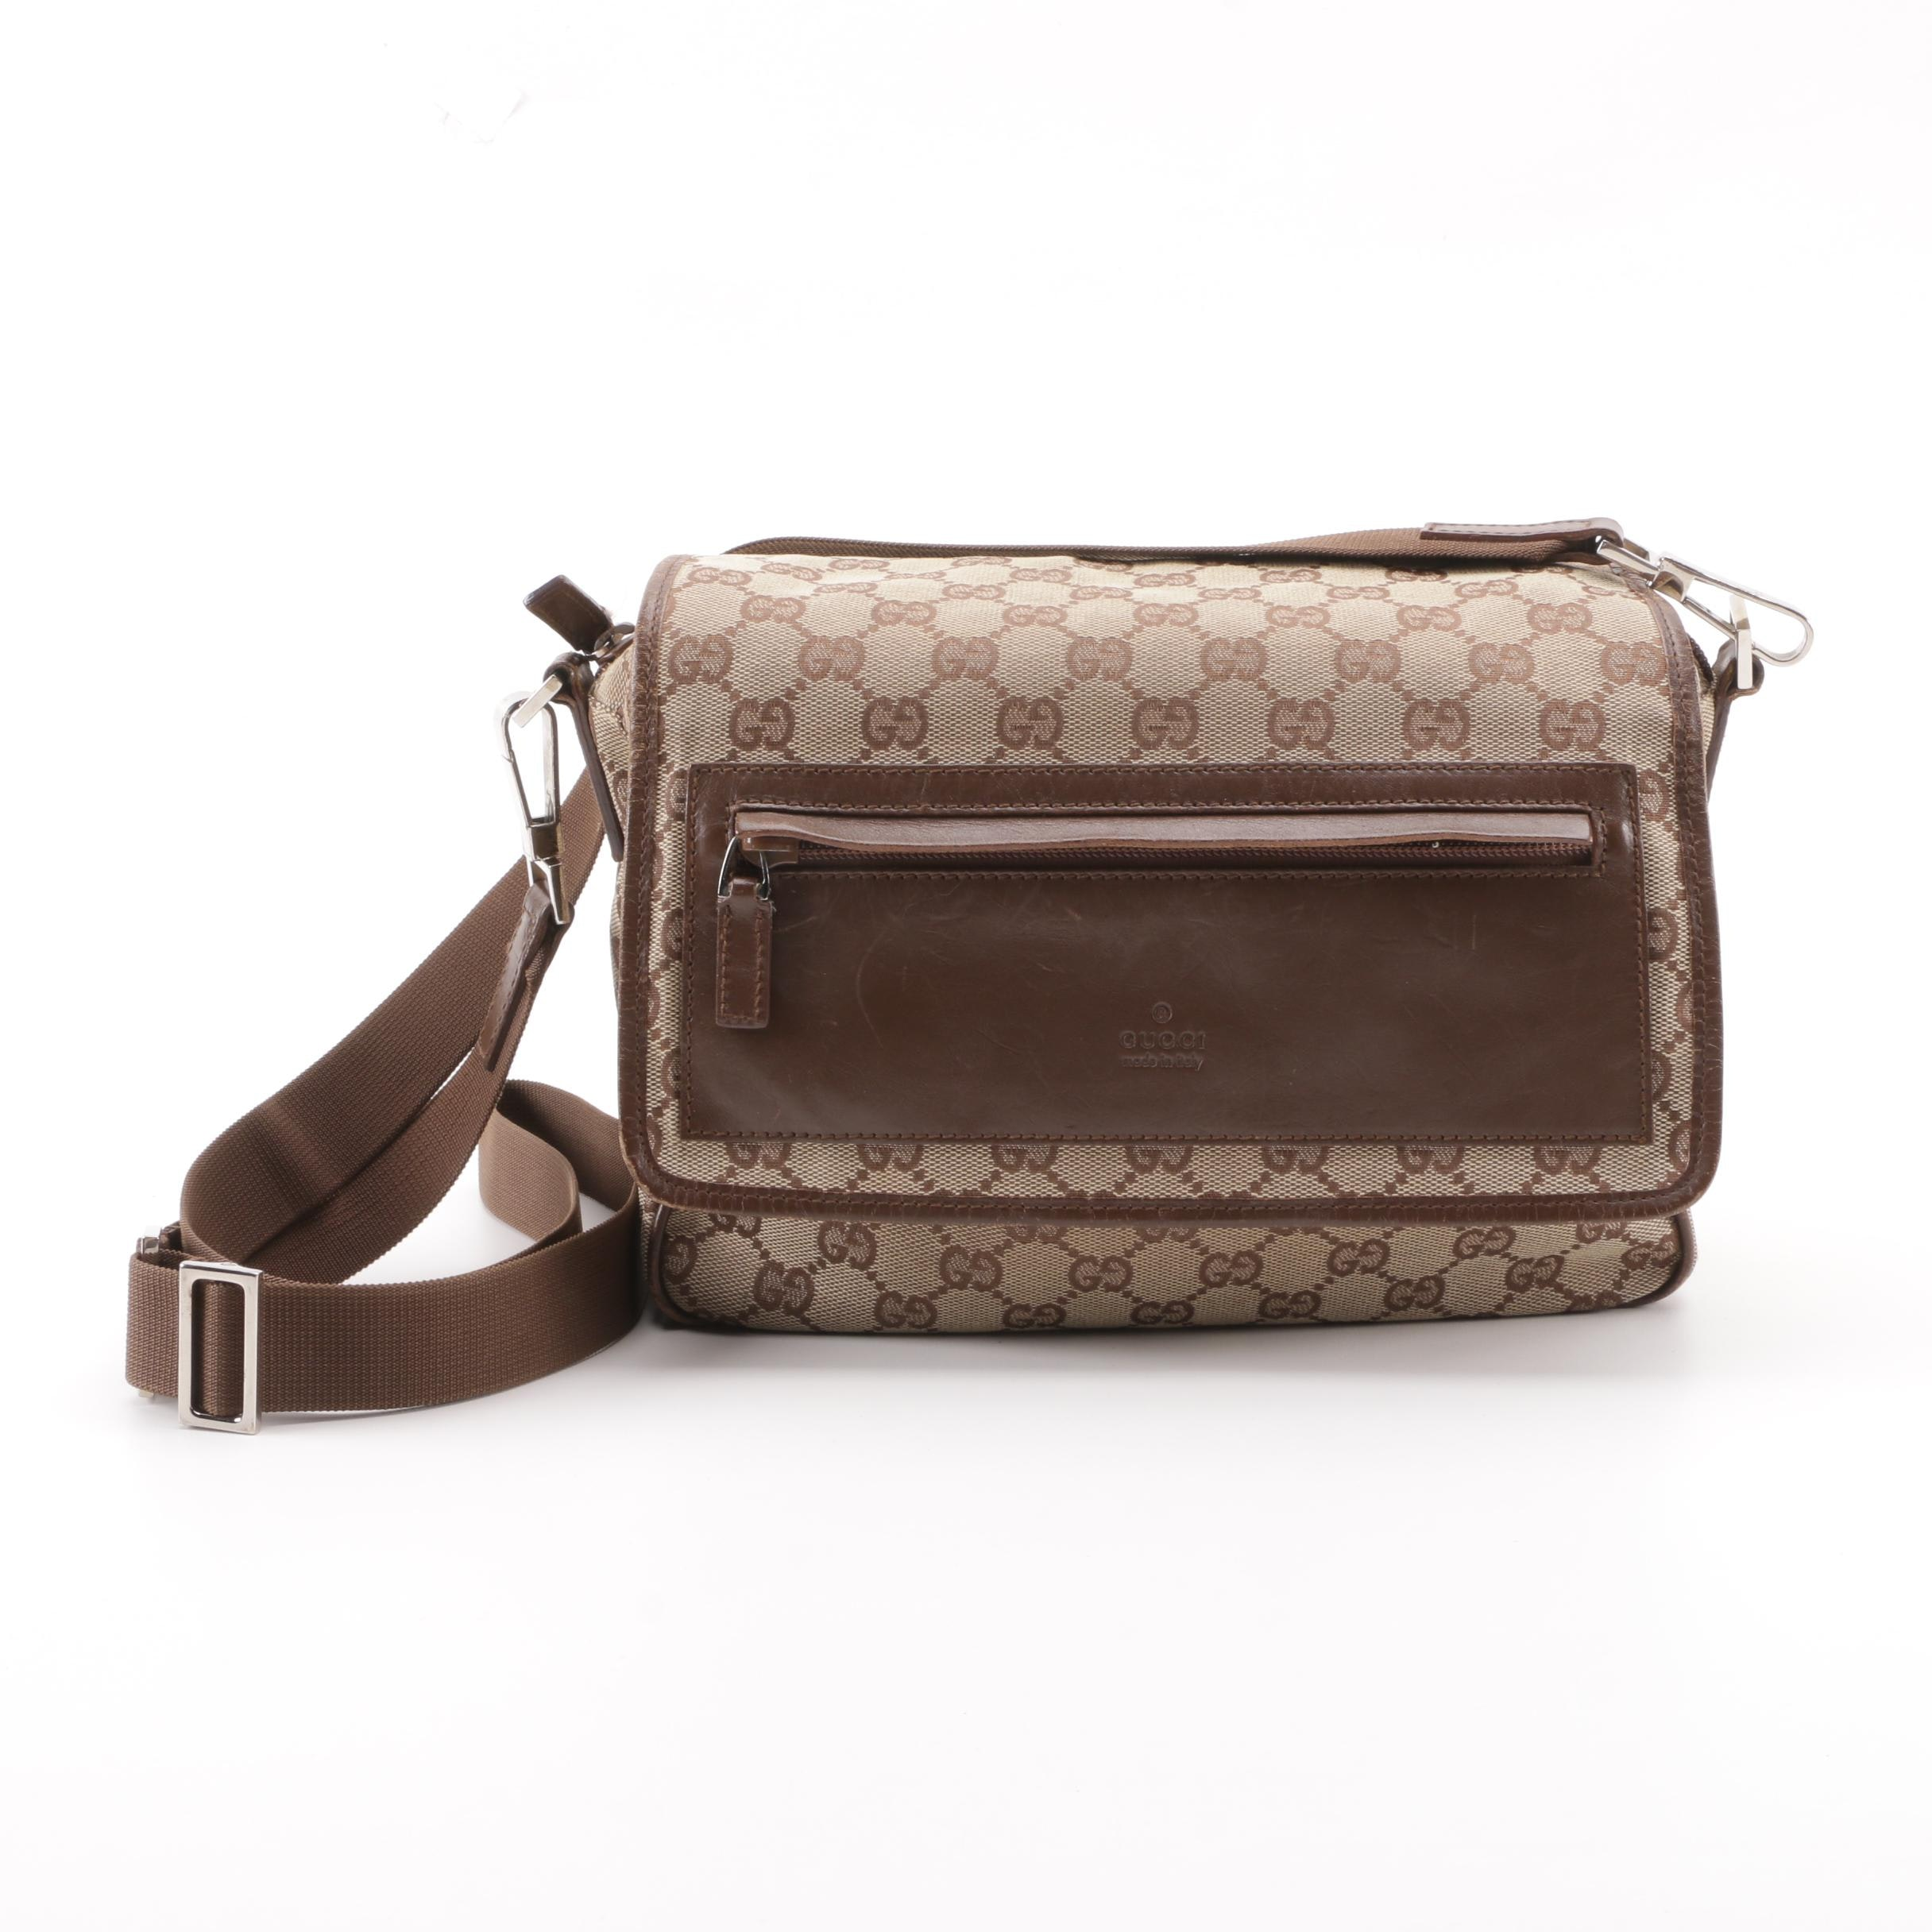 Vintage Gucci GG Canvas and Brown Leather Flap Front Crossbody Bag